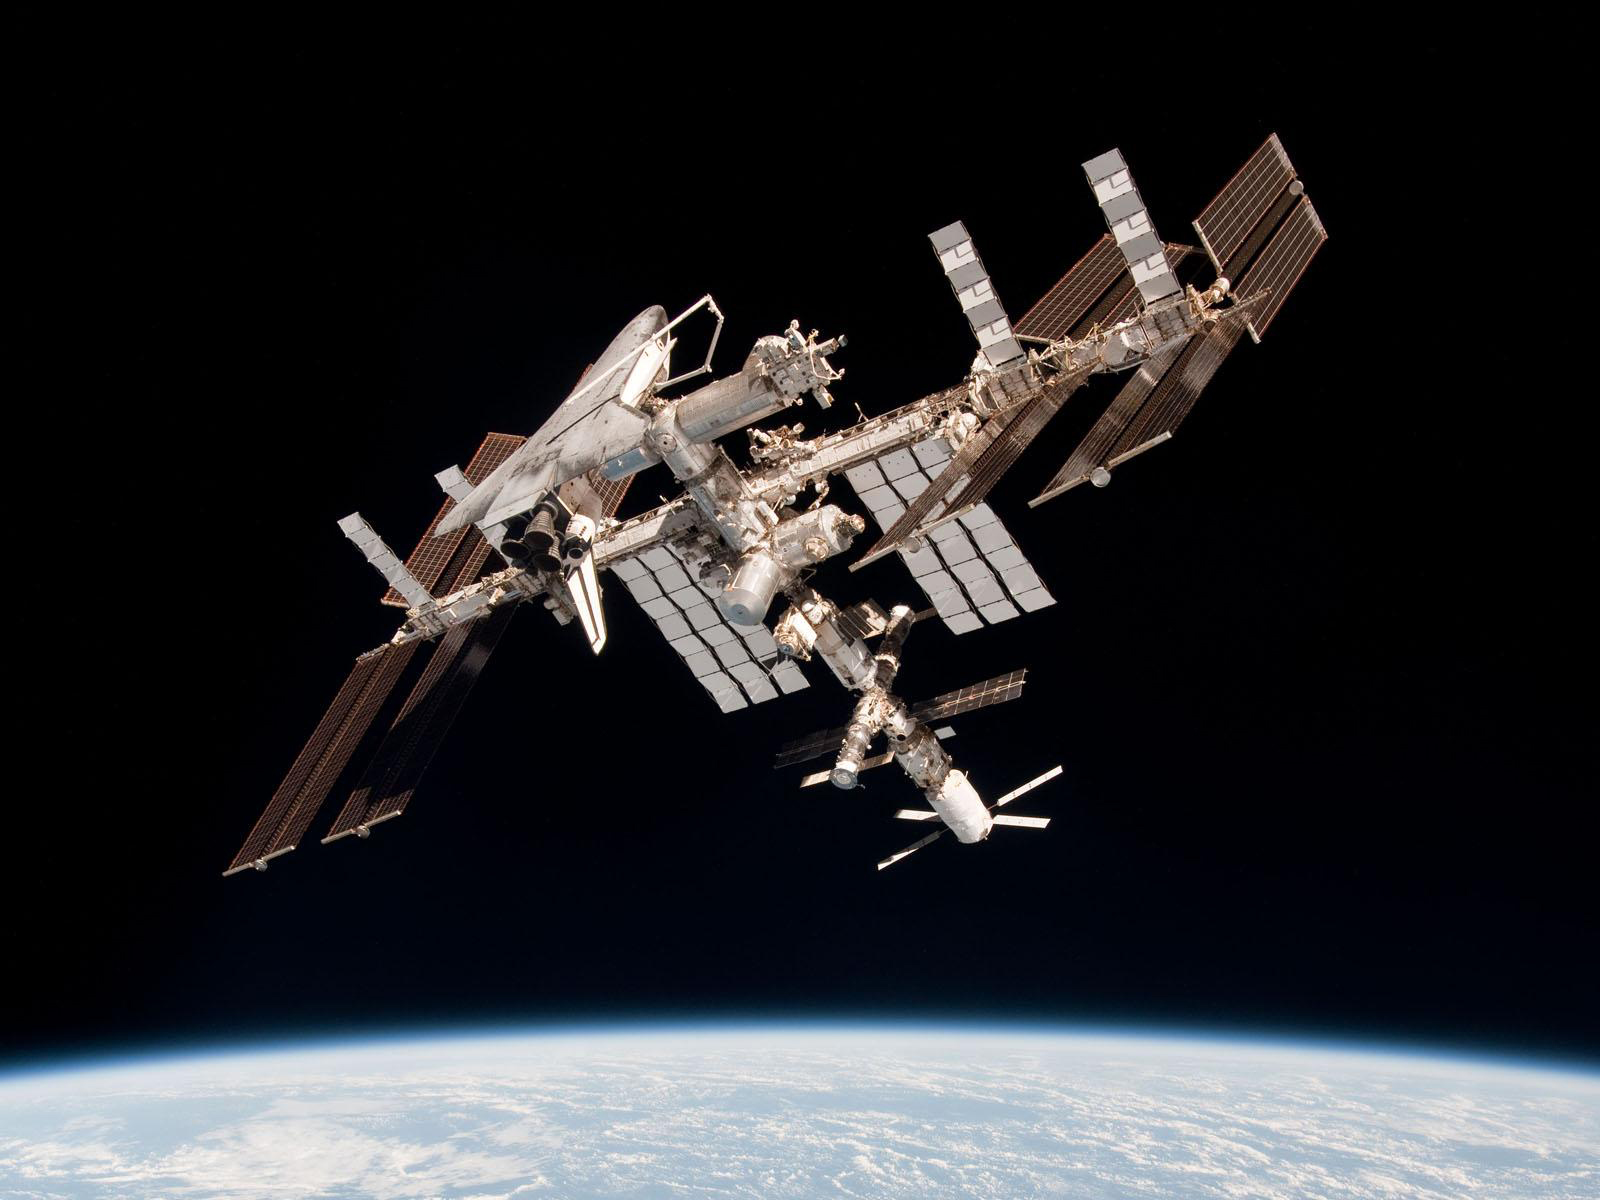 international space station from earth to current transportation - photo #10